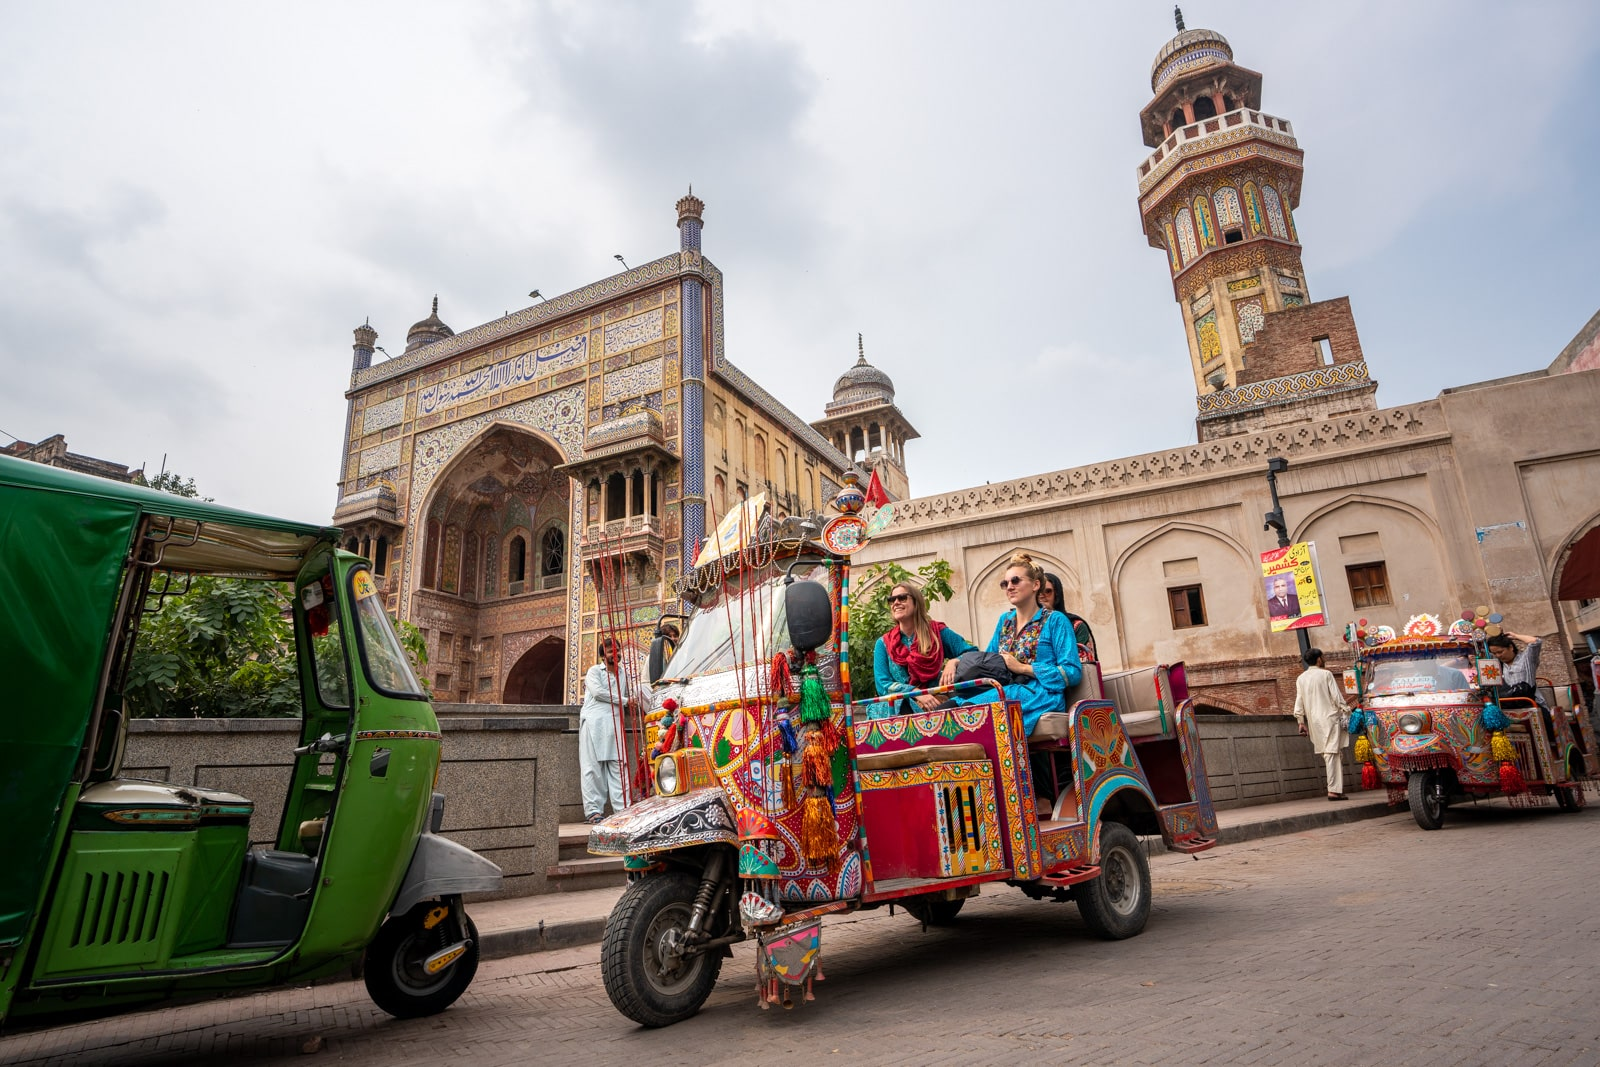 Female travelers in a Rangeela Rickshaw in Lahore, Pakistan